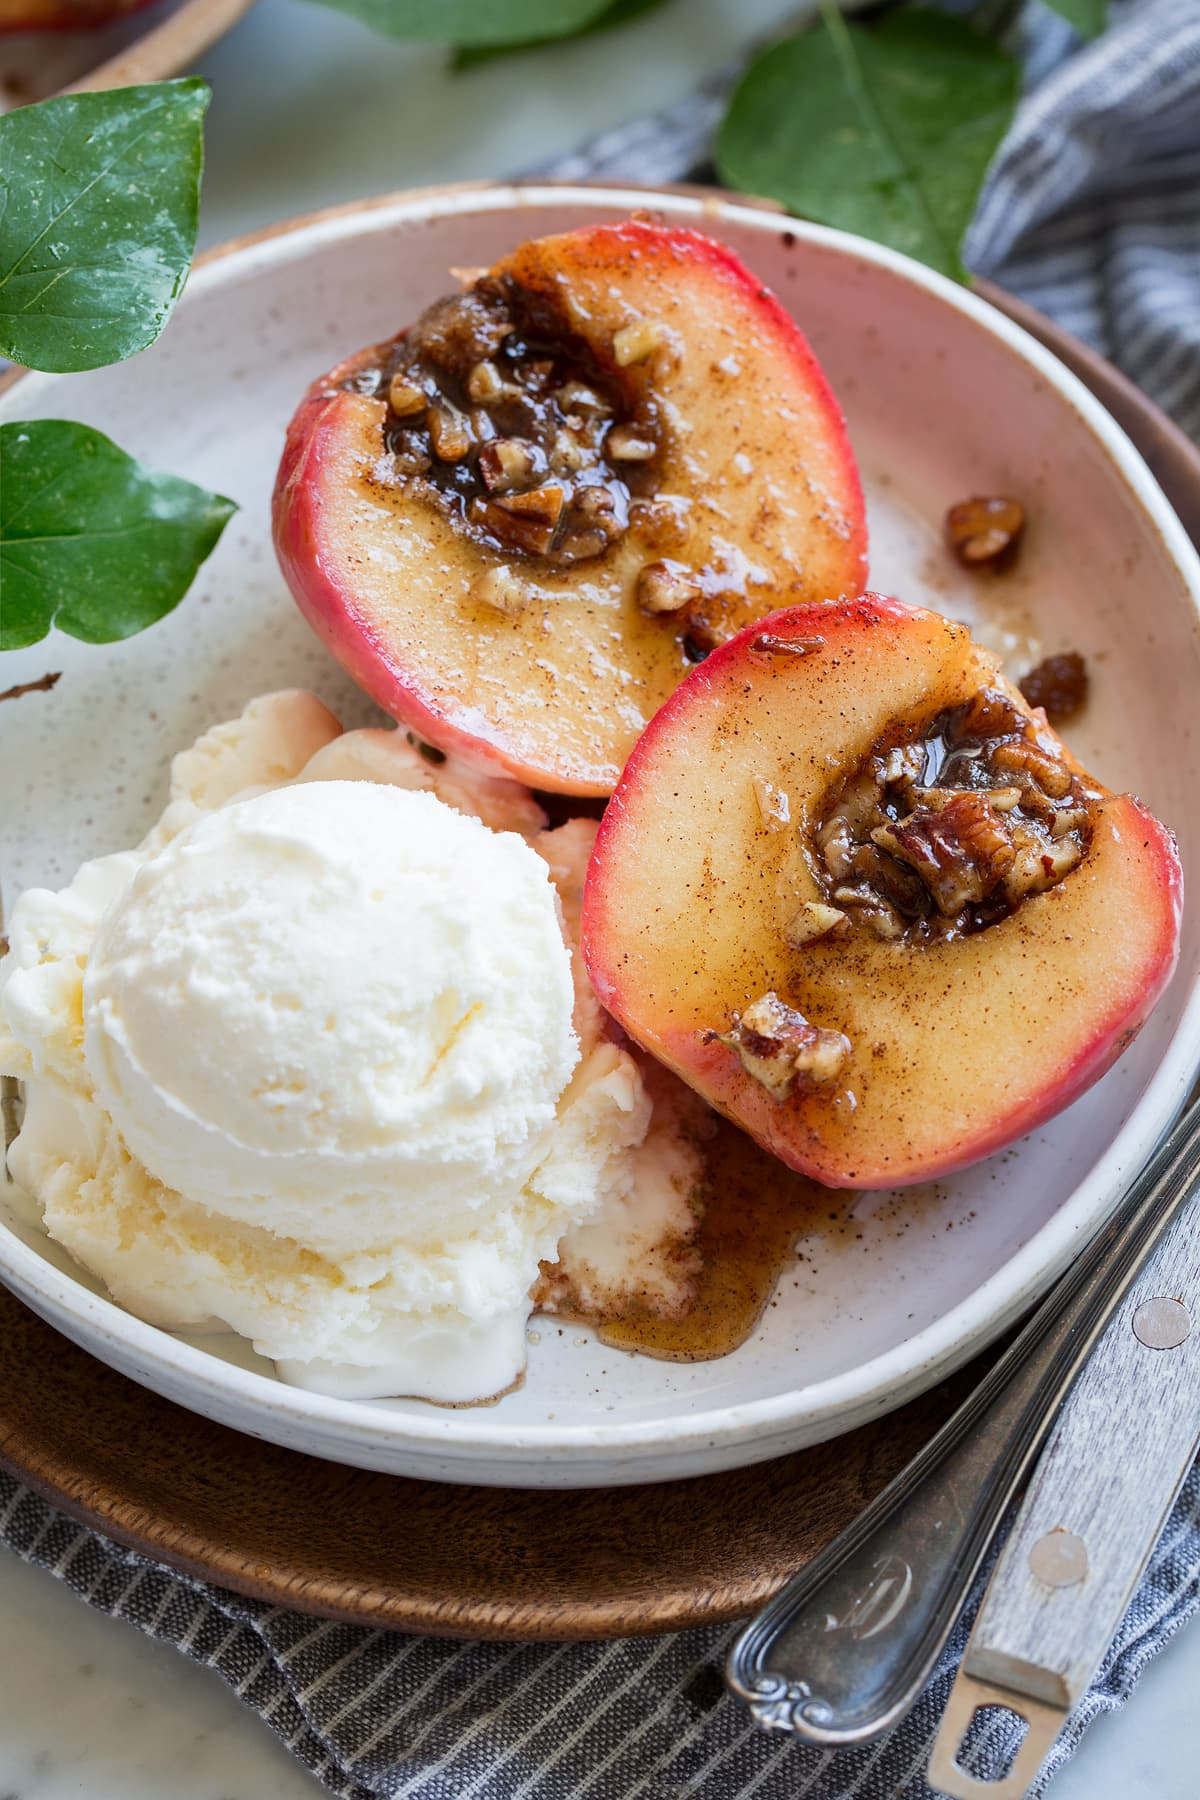 Baked apple sliced in half showing brown sugar pecan filling. Served with a side of vanilla ice cream.